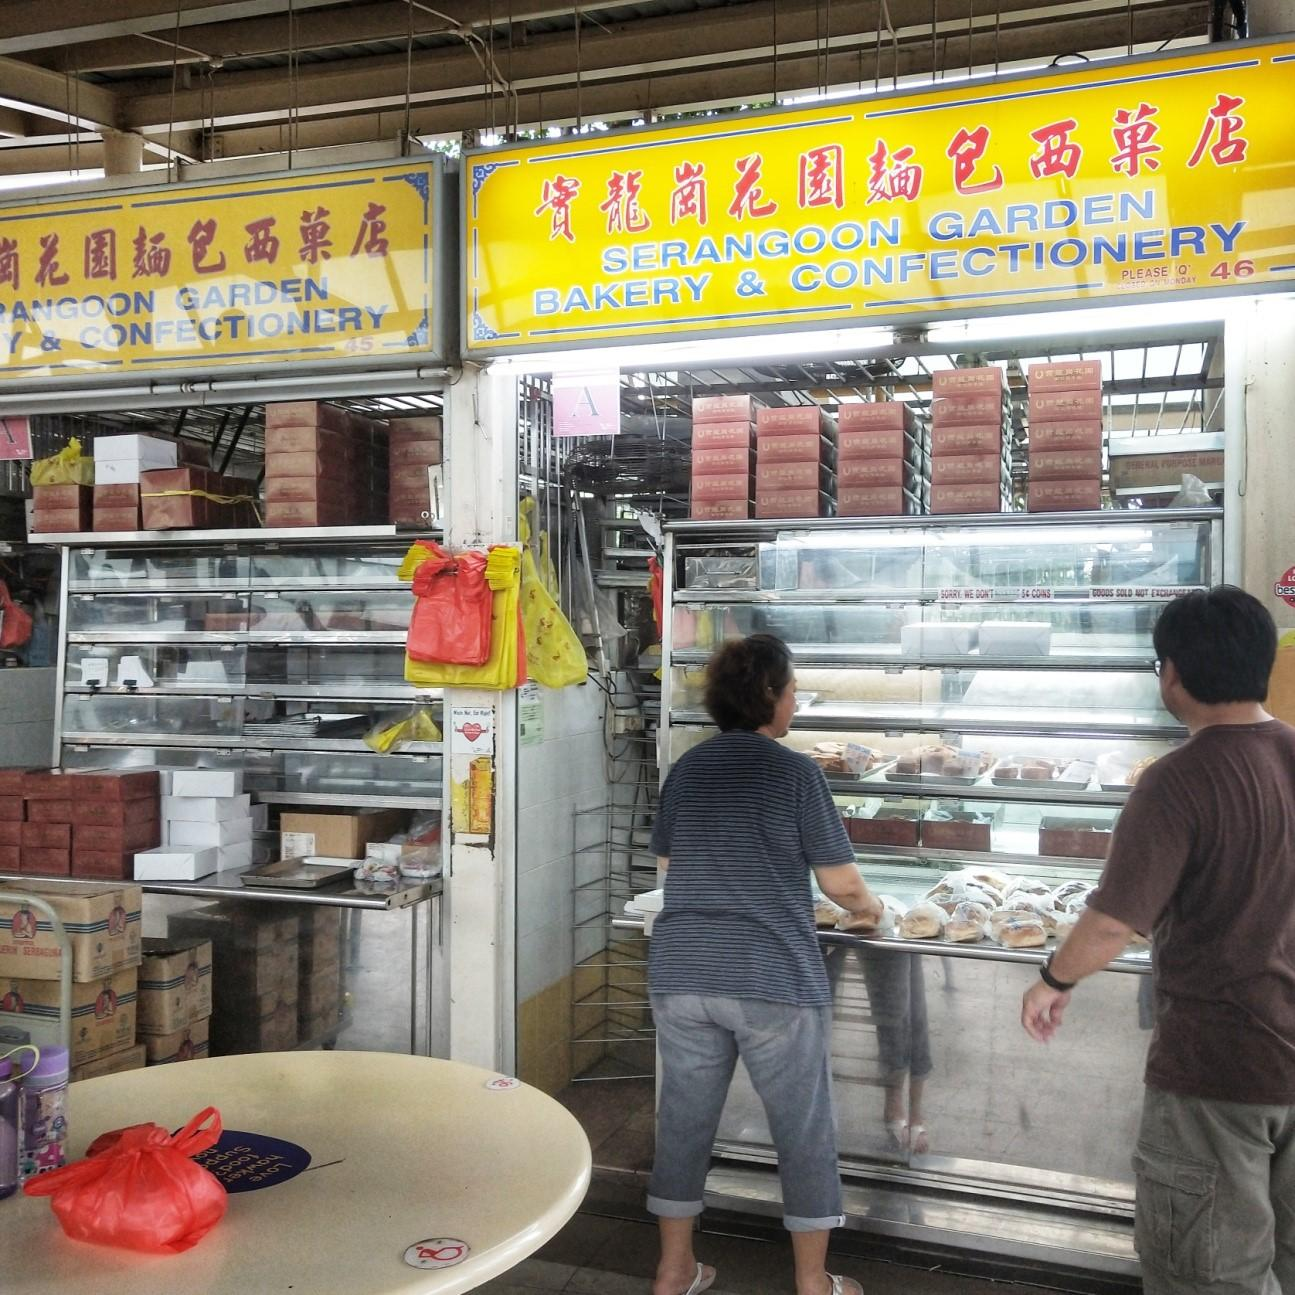 4 of the Oldest Shops at Serangoon Garden [Local Guide]